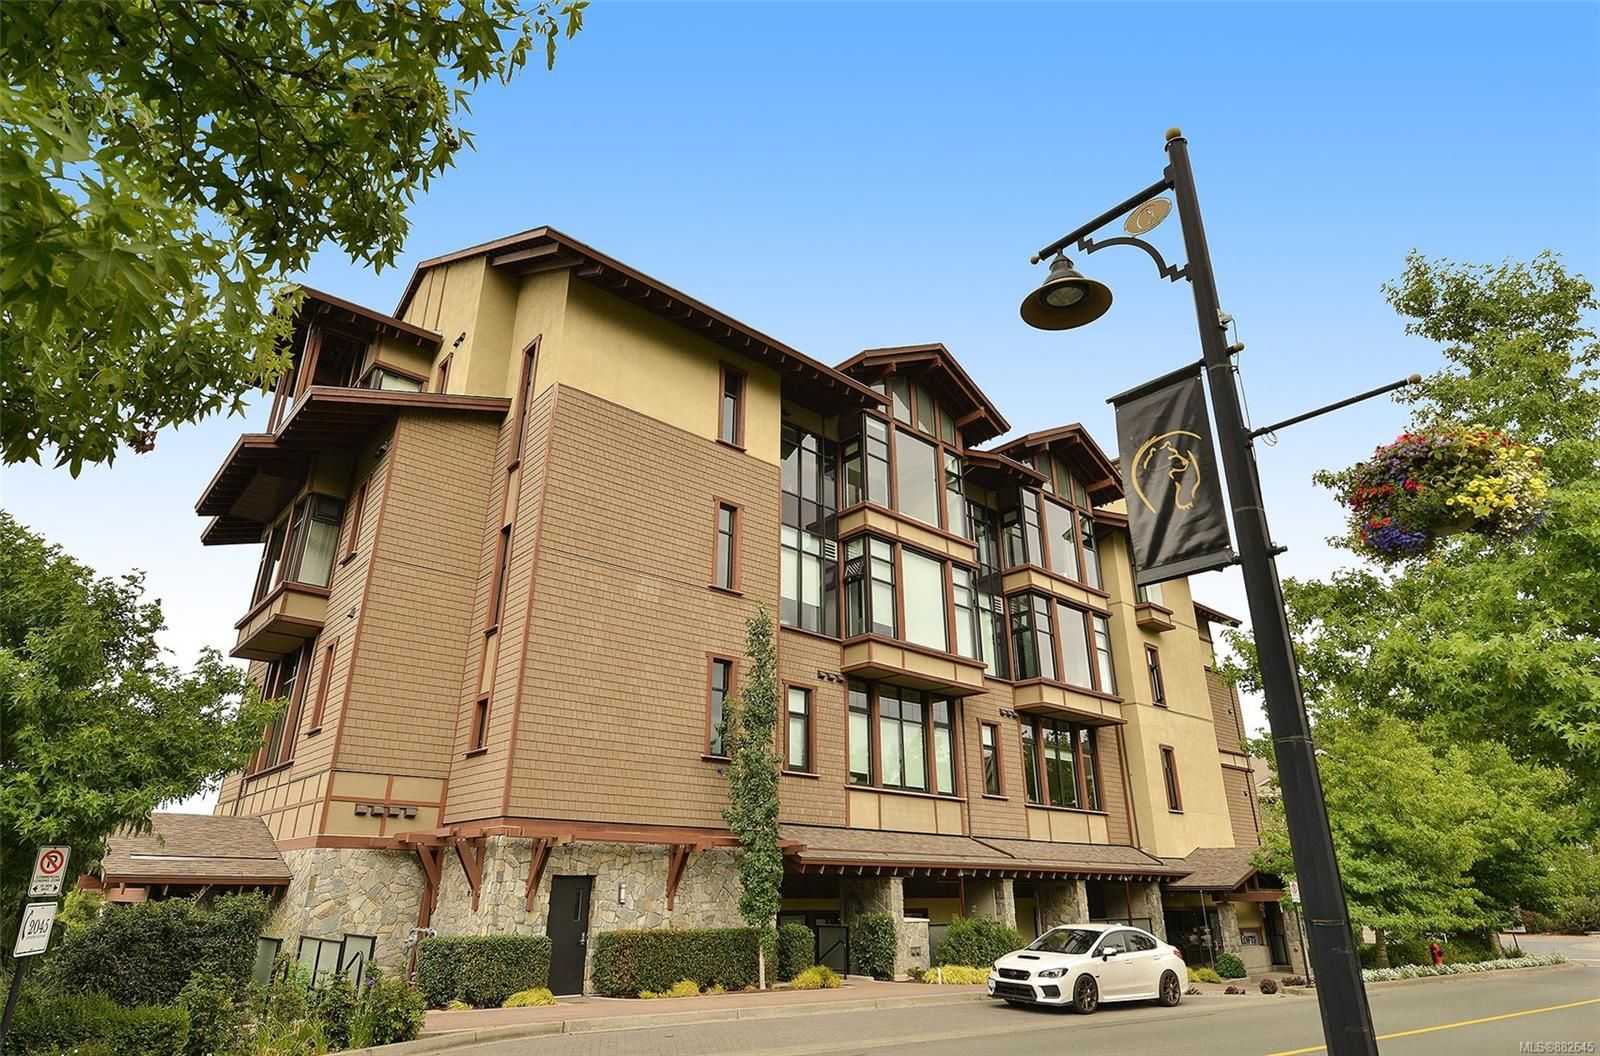 Main Photo: 302 2049 Country Club Way in : La Bear Mountain Condo for sale (Langford)  : MLS®# 882645